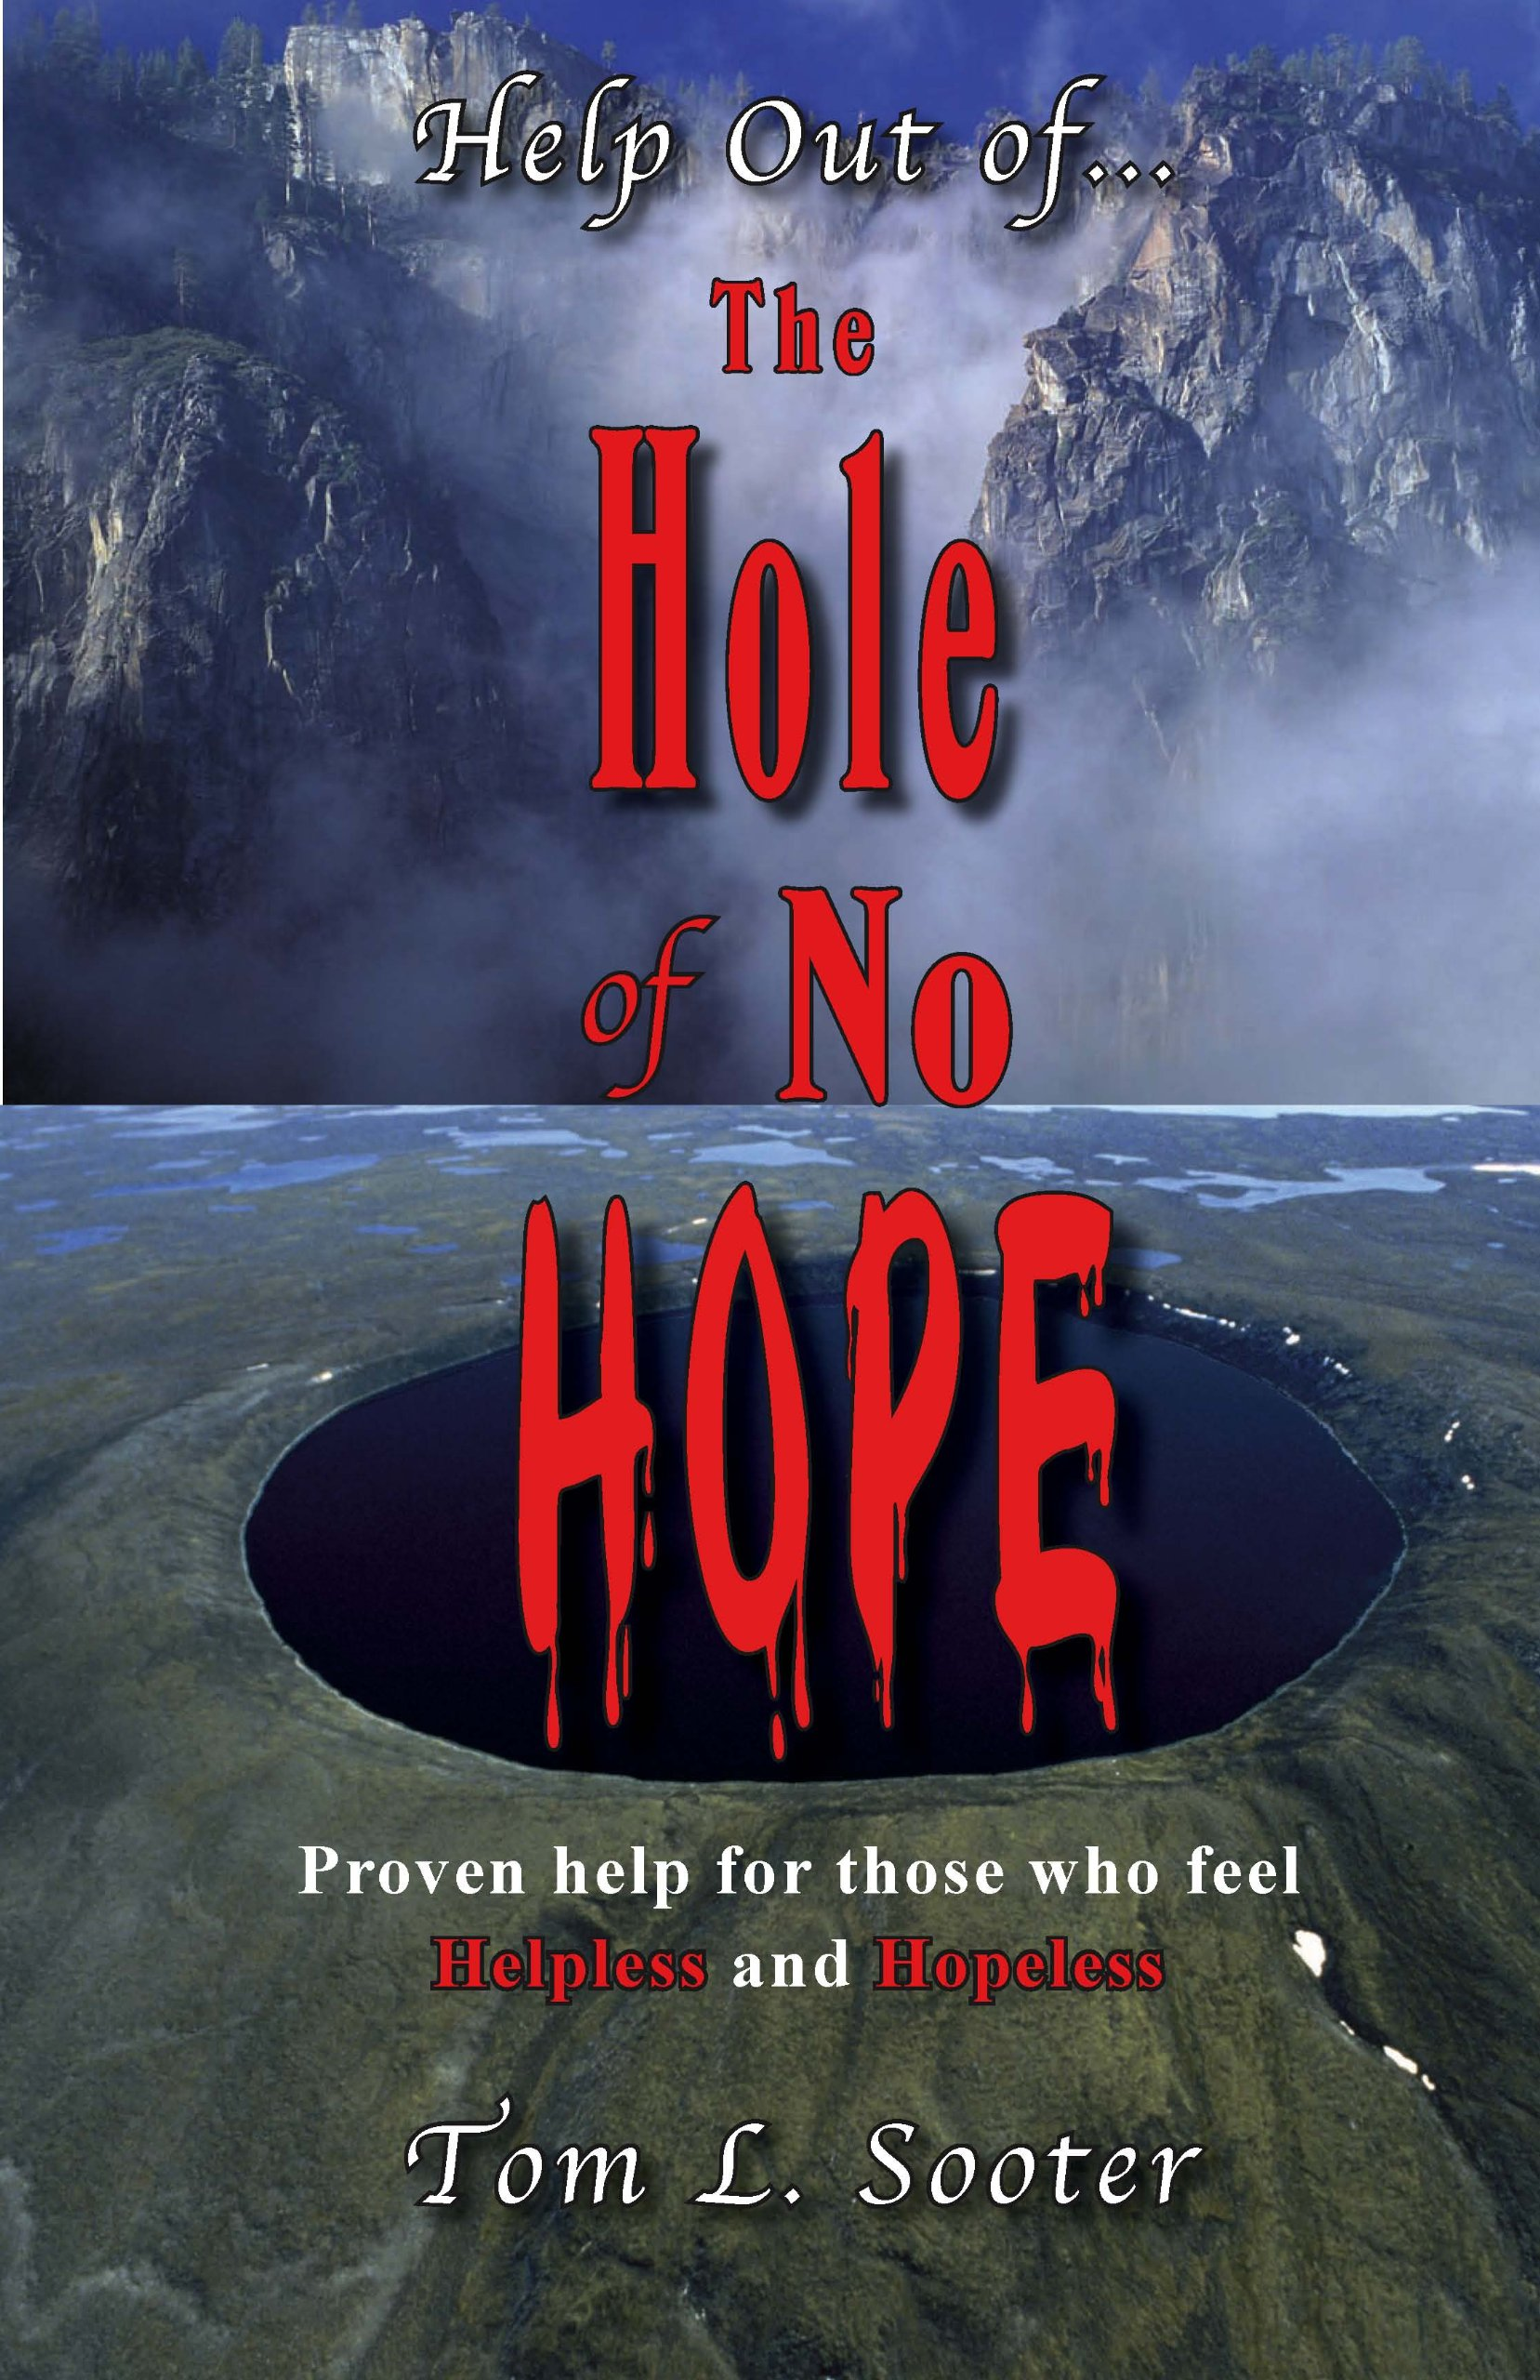 Help out of...The Hole of No Hope pdf